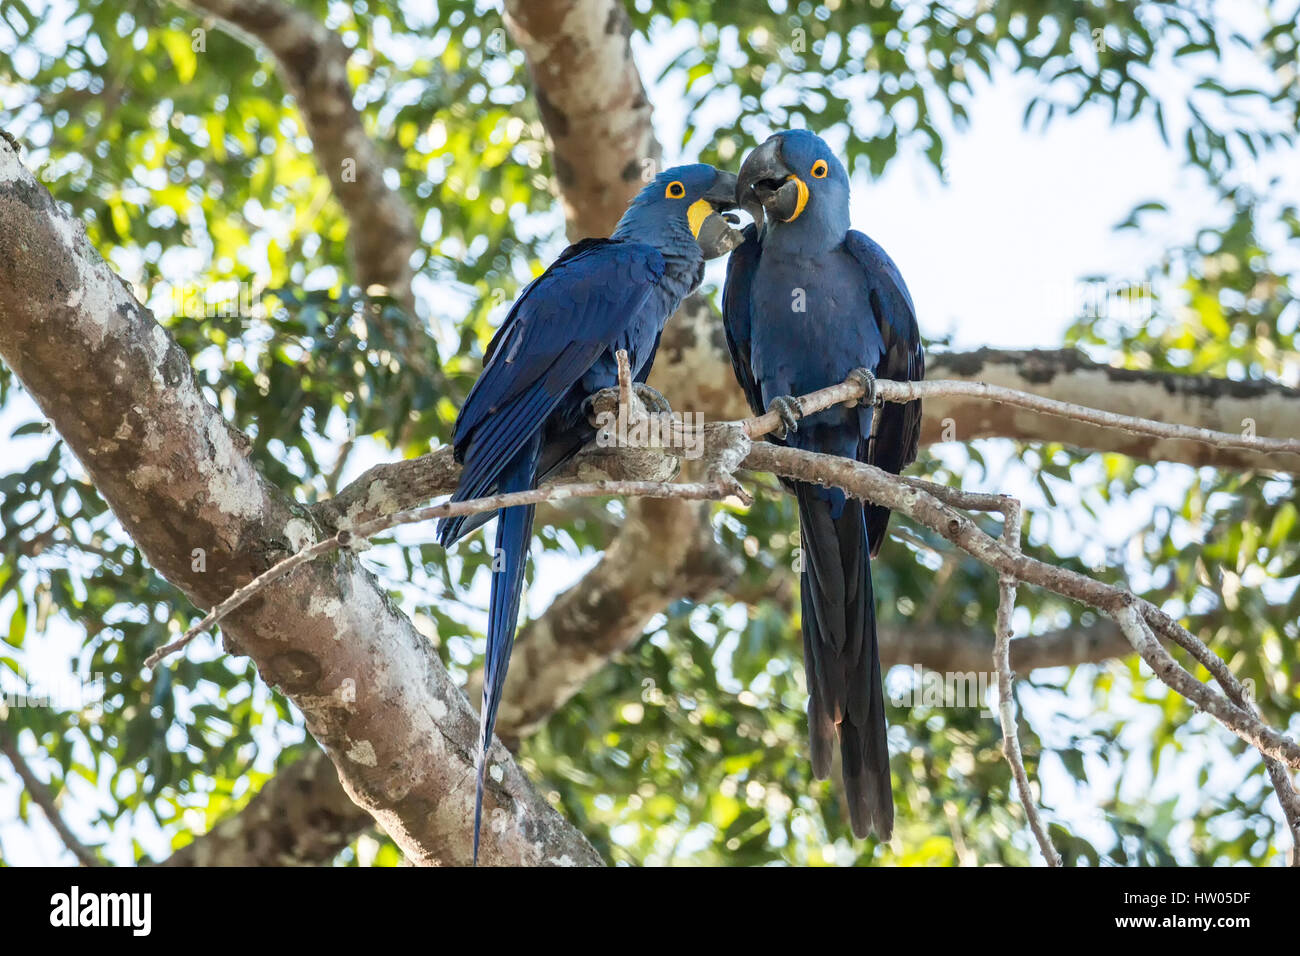 Mated pair of Hyacinth Macaws showing affection as they perch in a tree in the Pantanal region, Mato Grosso, Brazil, - Stock Image